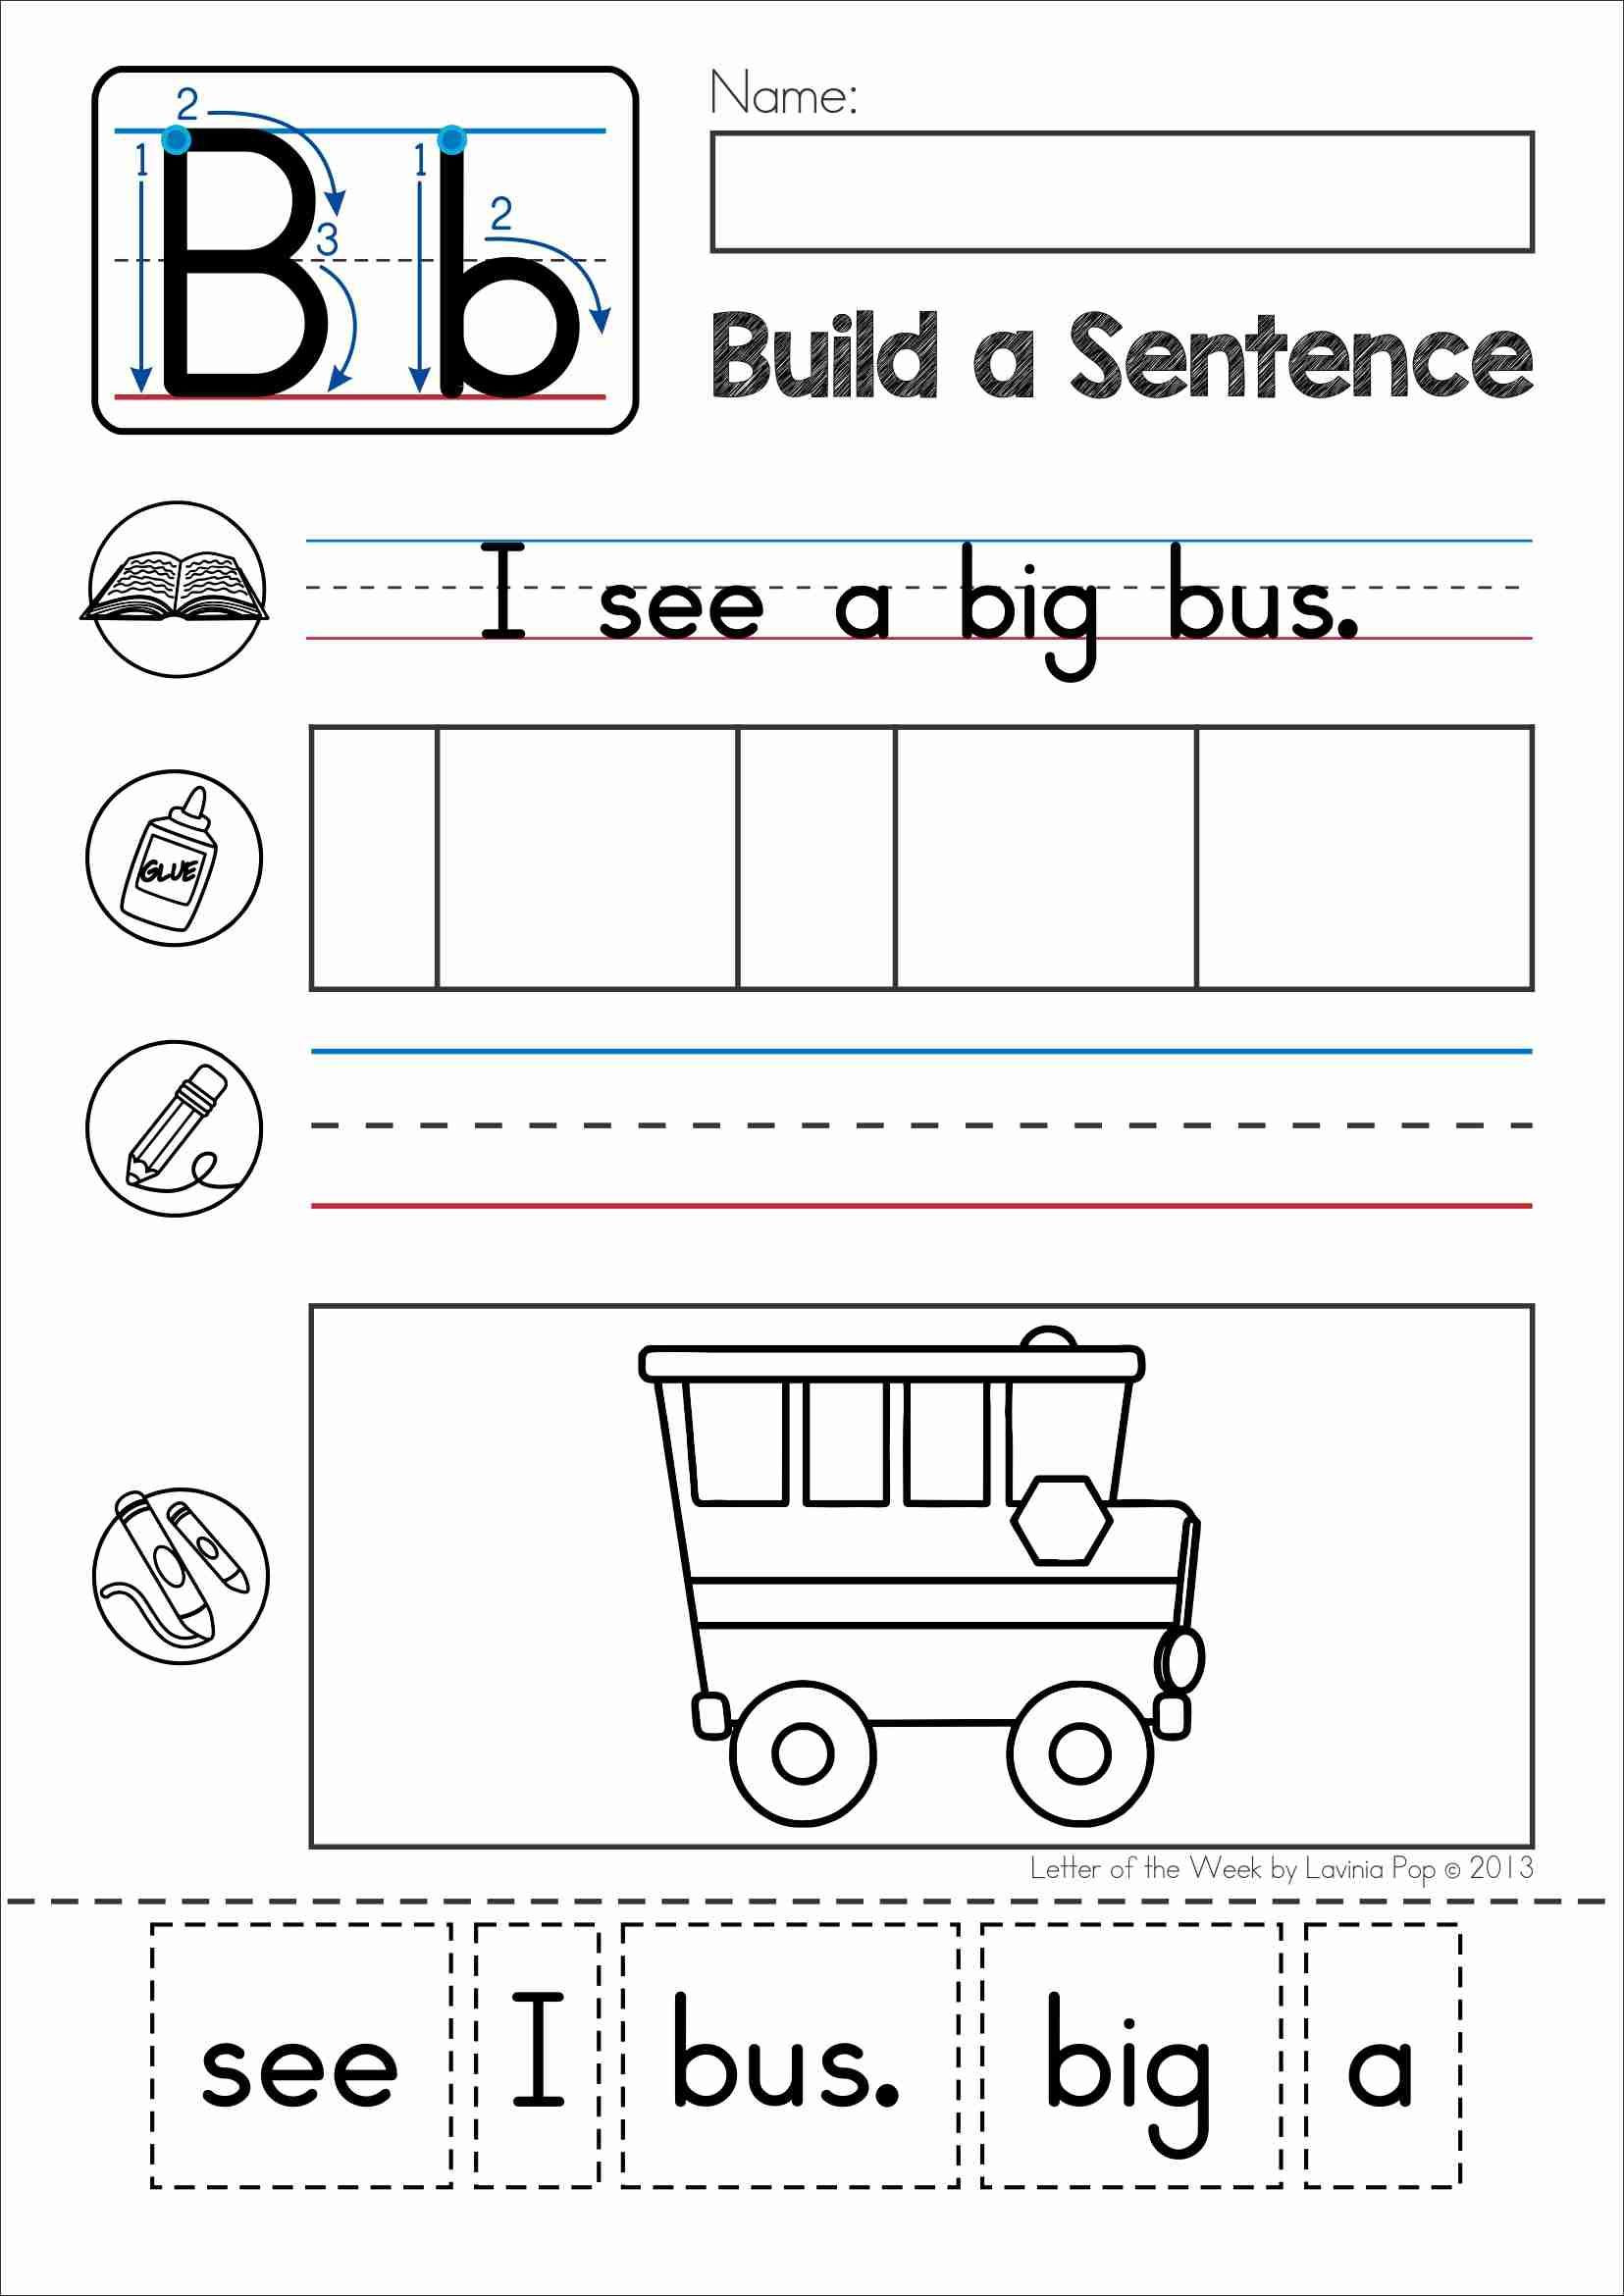 Free Printable Sentence Structure Worksheets Pin On Homeschooling Ideas